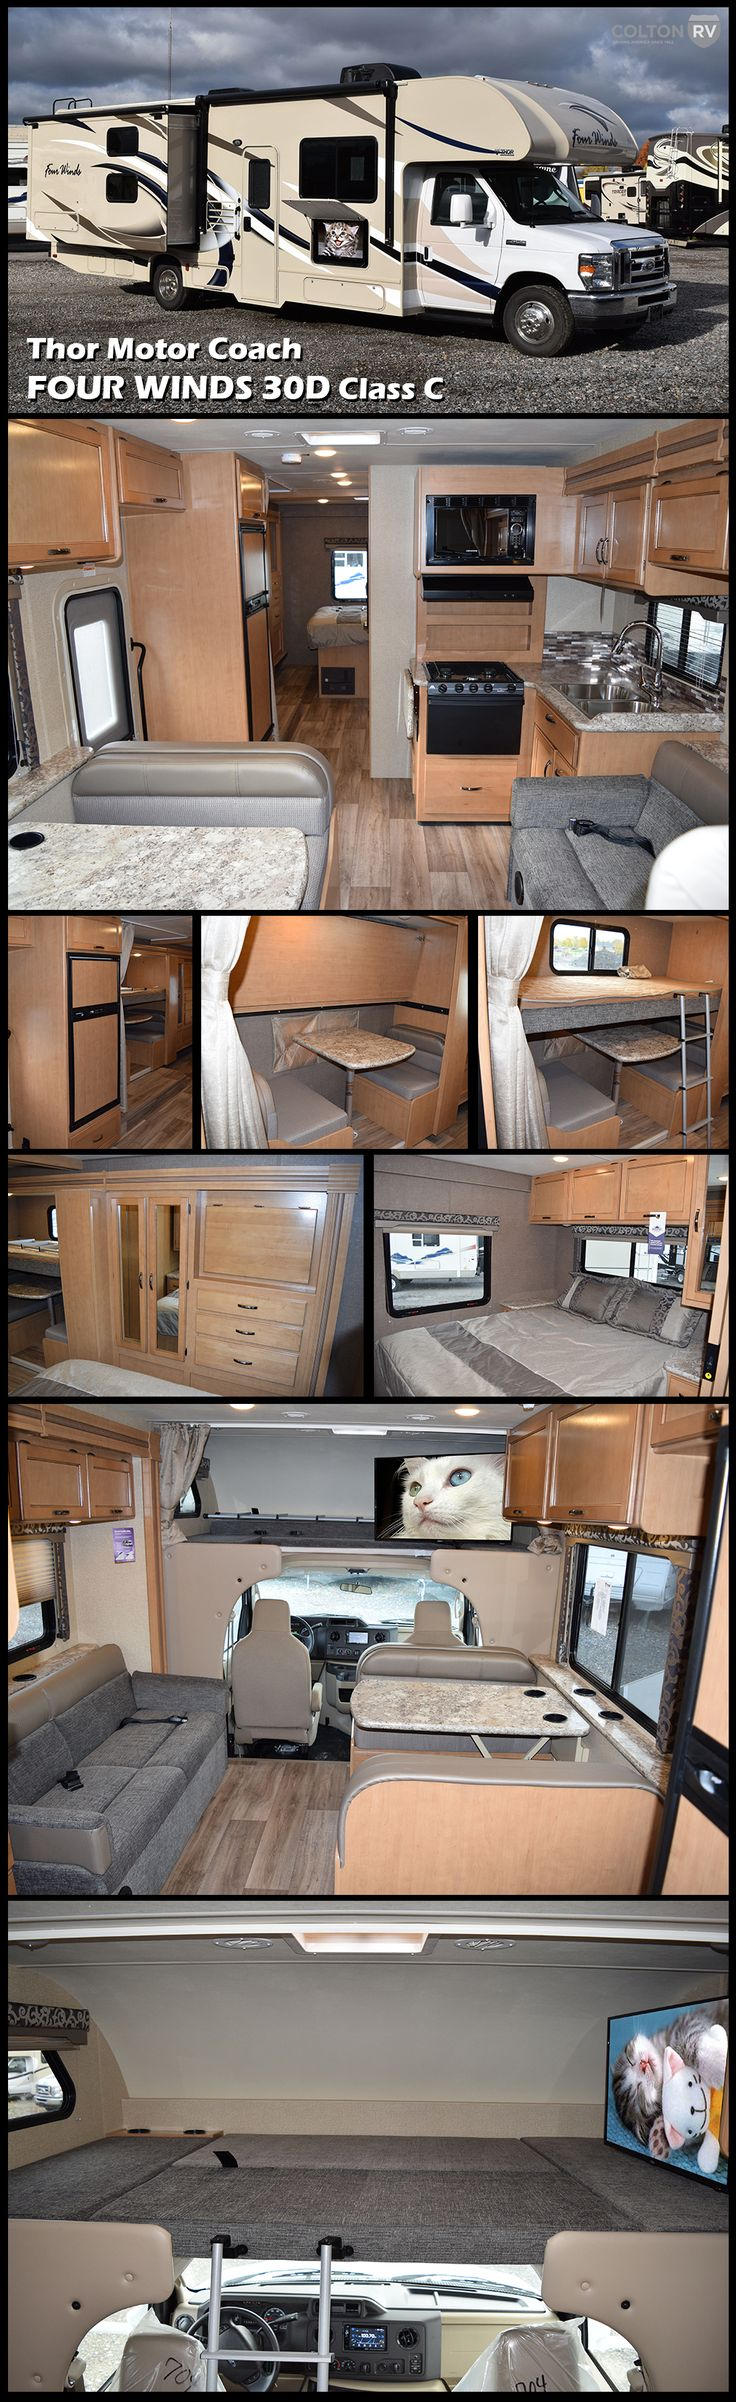 2017 thor motor coach four winds new class c rv for sale in orchard park new york